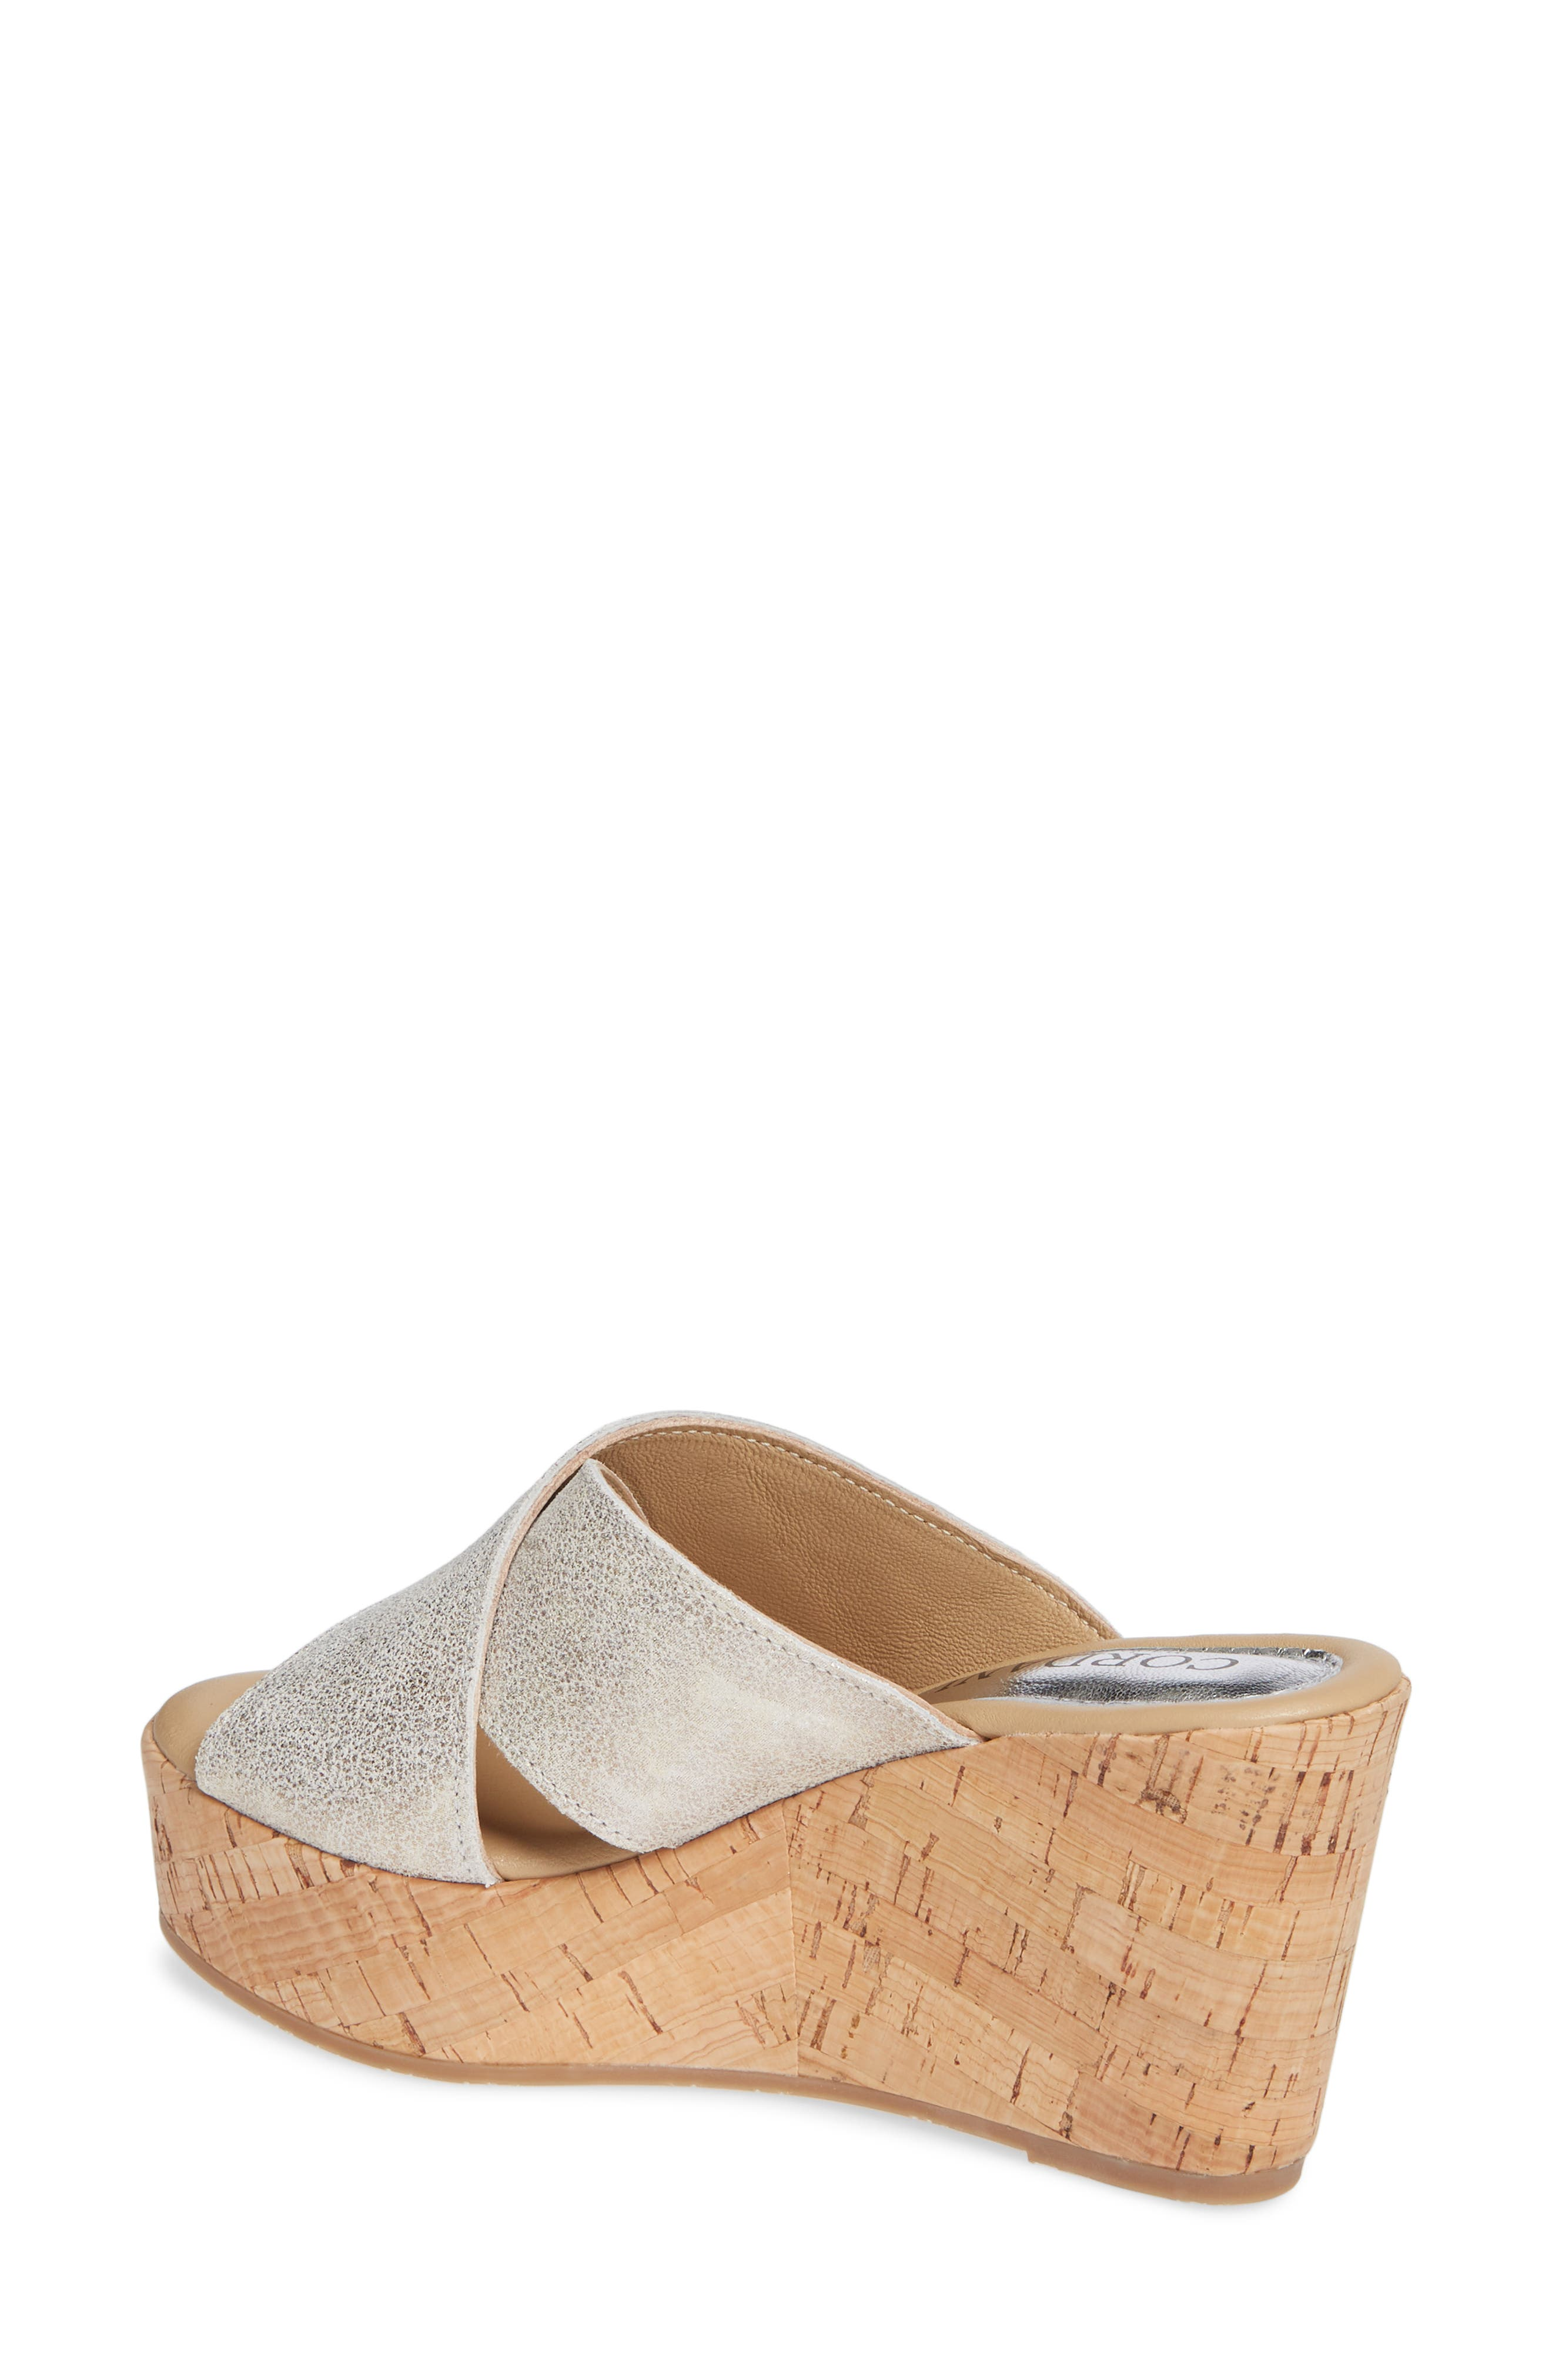 Jan Platform Wedge Slide Sandal,                             Alternate thumbnail 2, color,                             PEARL SUEDE